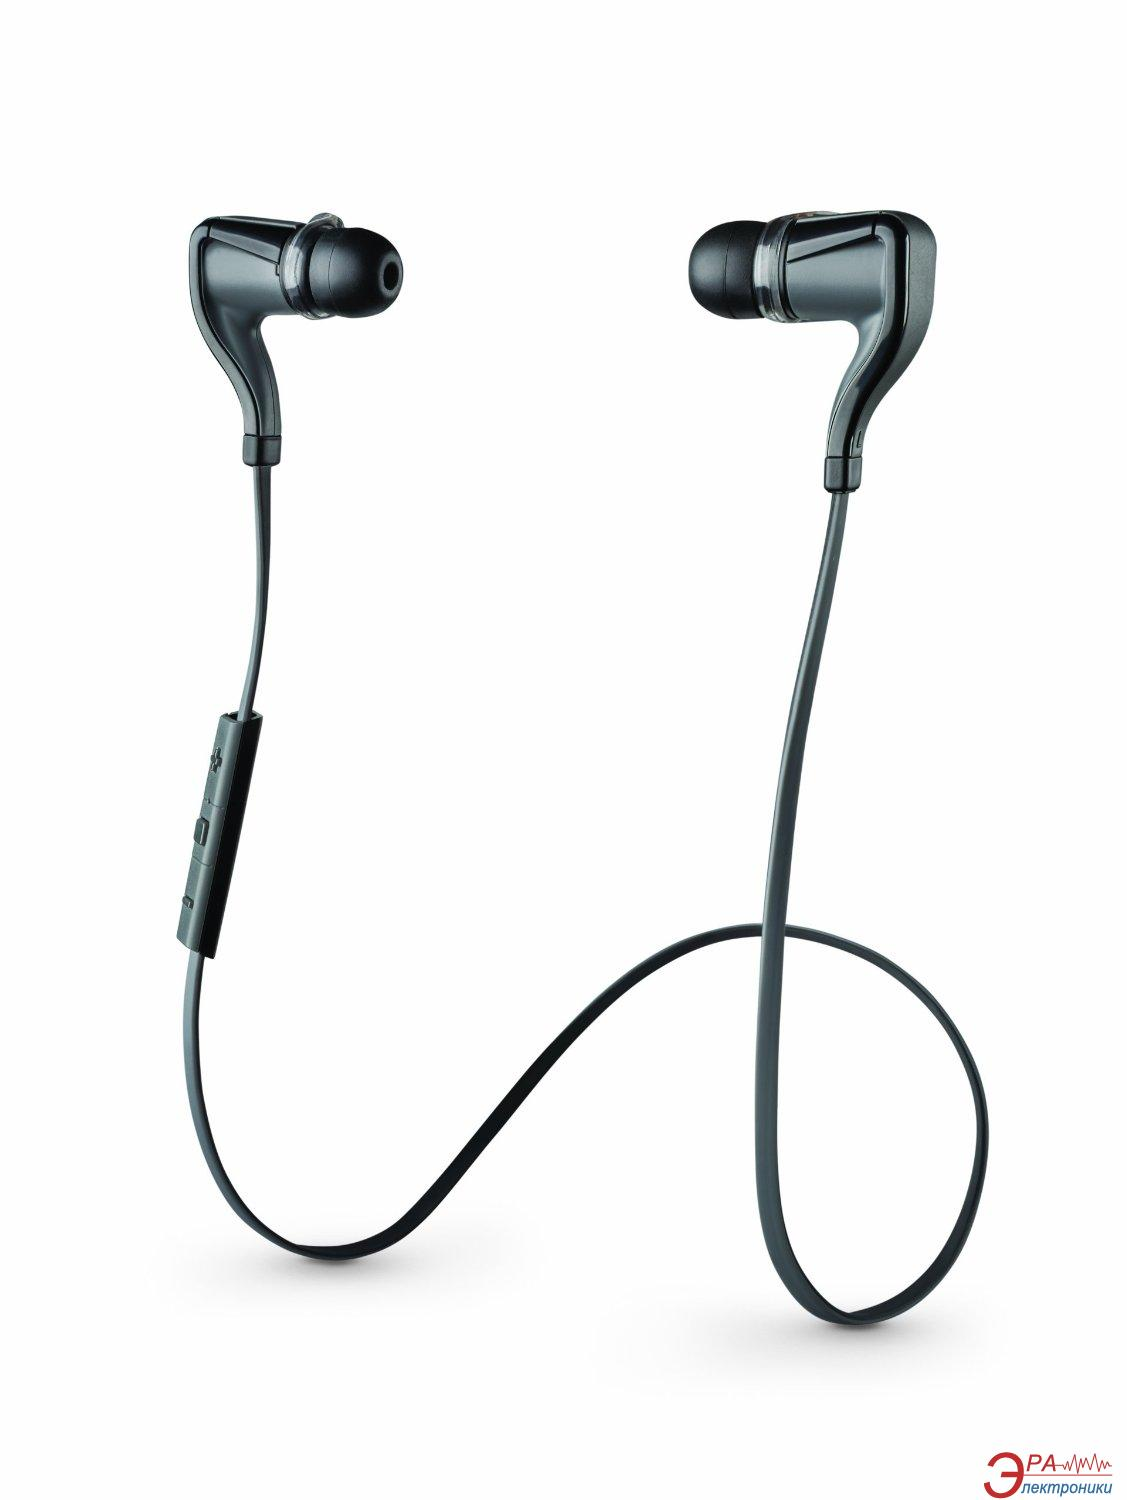 Гарнитура Plantronics BackBeat GO 2 Black (88600-05)